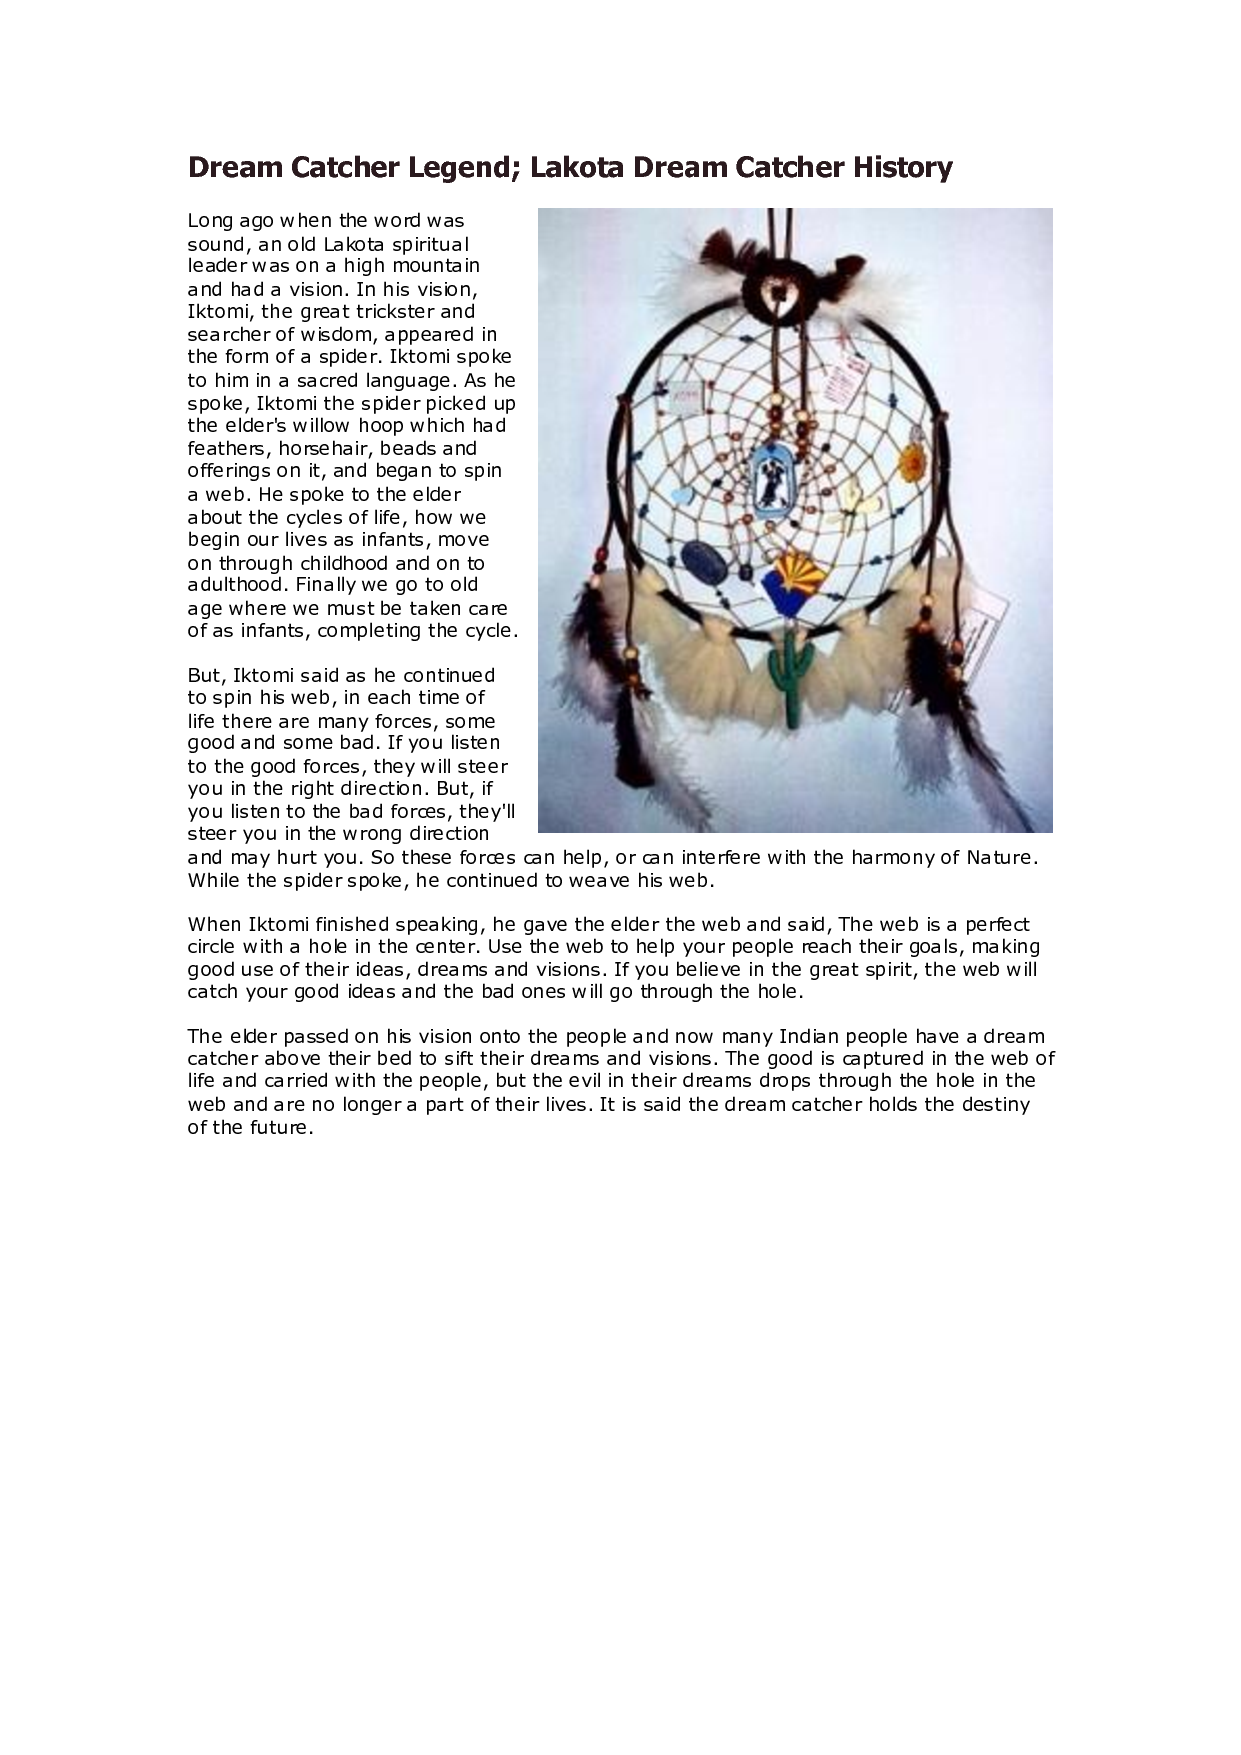 History Of Dream Catchers Cool Lakota Dream Catcher Legend  Dream Catcher Legend Lakota Dream